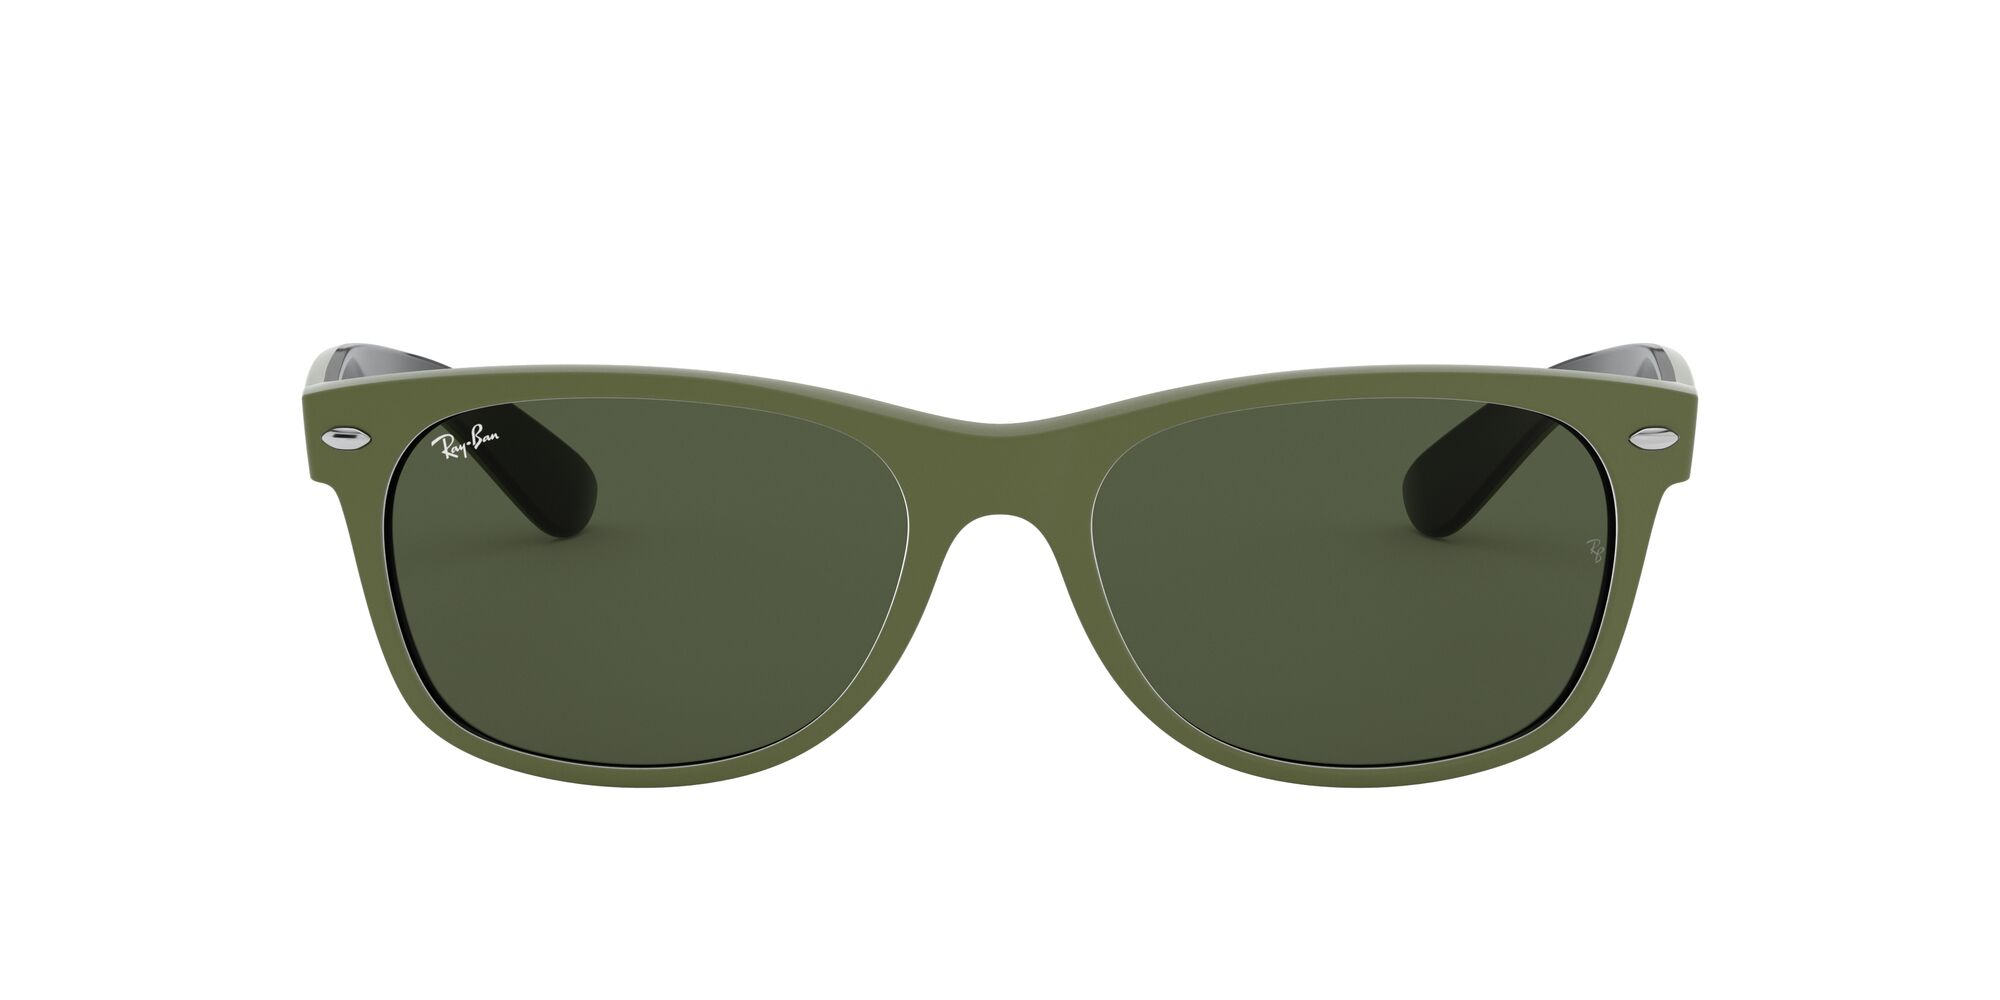 Front Ray-Ban Ray-Ban 0RB2132 646531 58/18 Groen/Groen